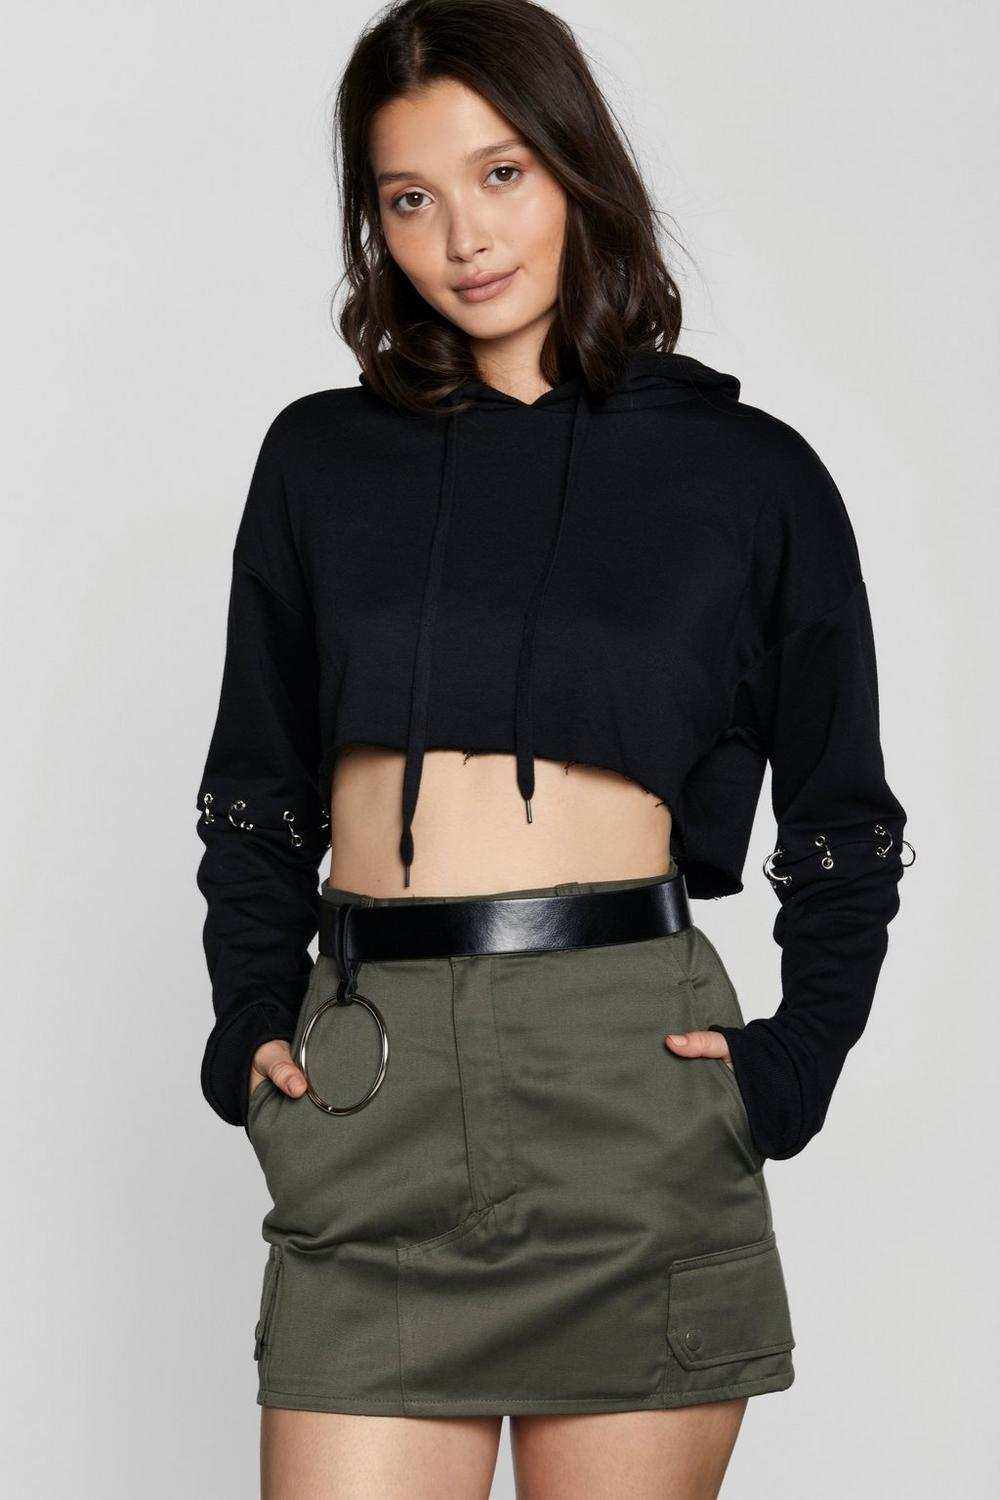 ad3f50623 After Party Vintage Army Brat Mini Skirt | Shop Clothes at Nasty Gal!